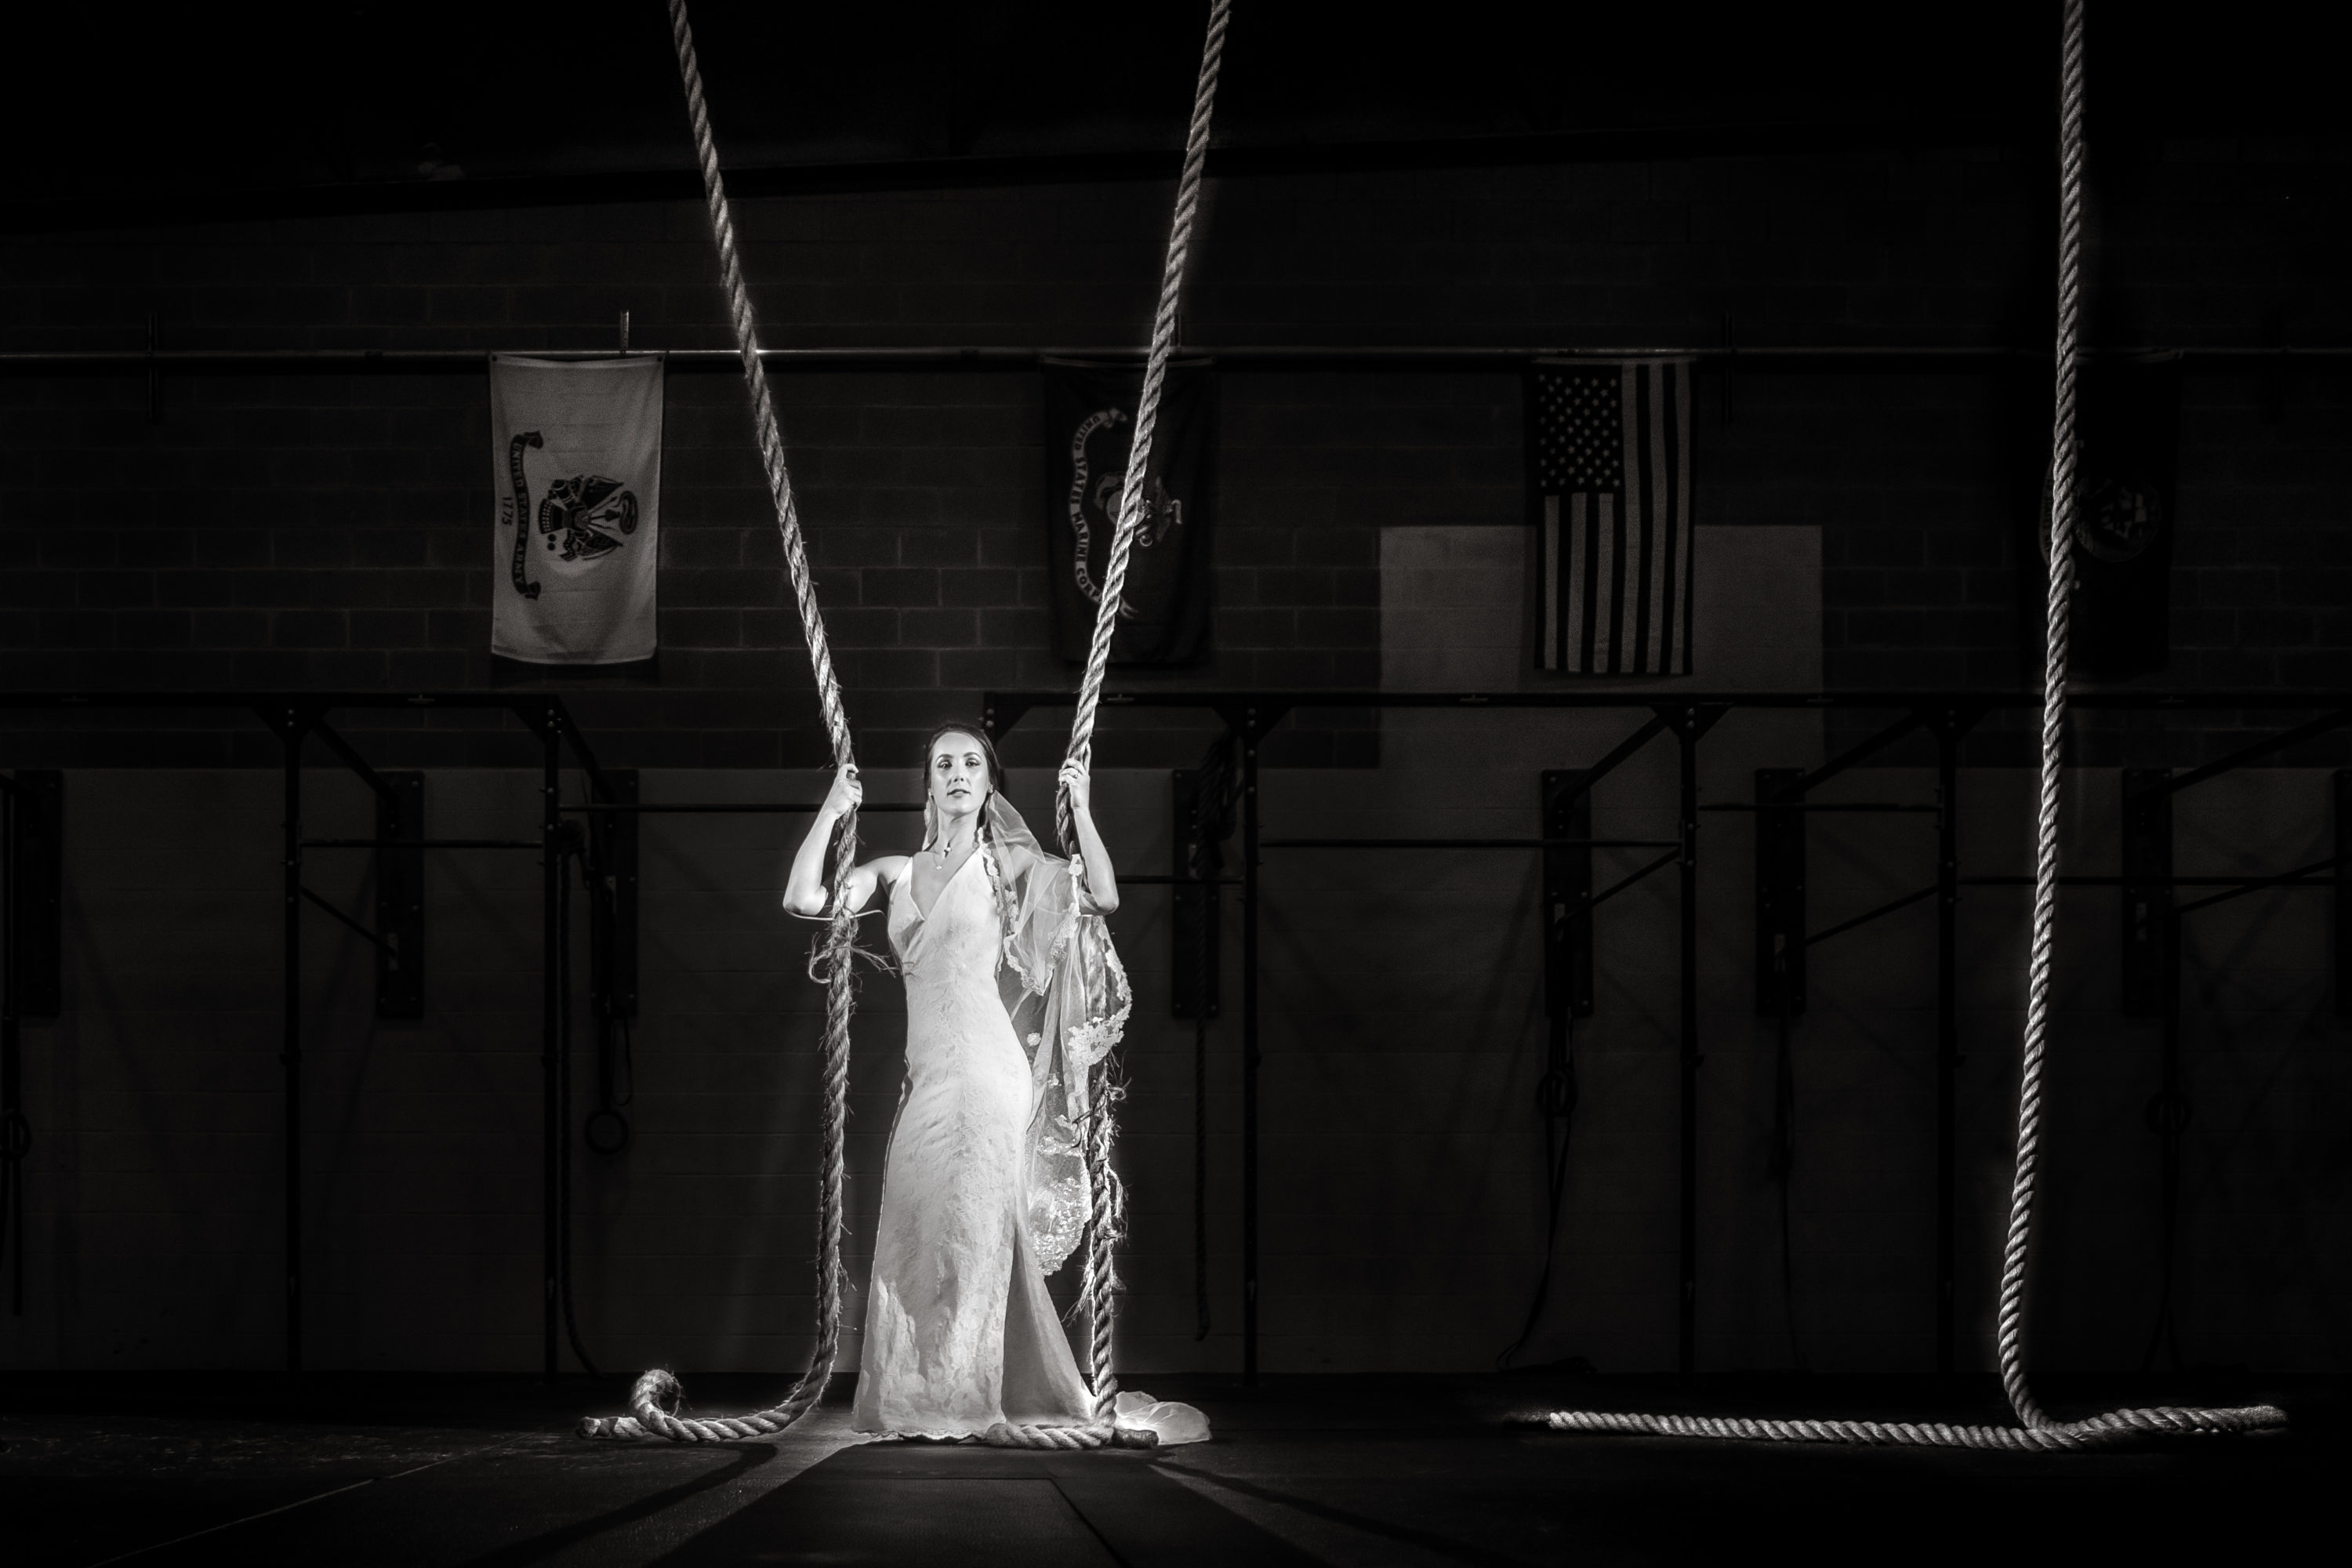 See image of bride taken during her bridal session in a Crossfit Gym in New Bern, NC